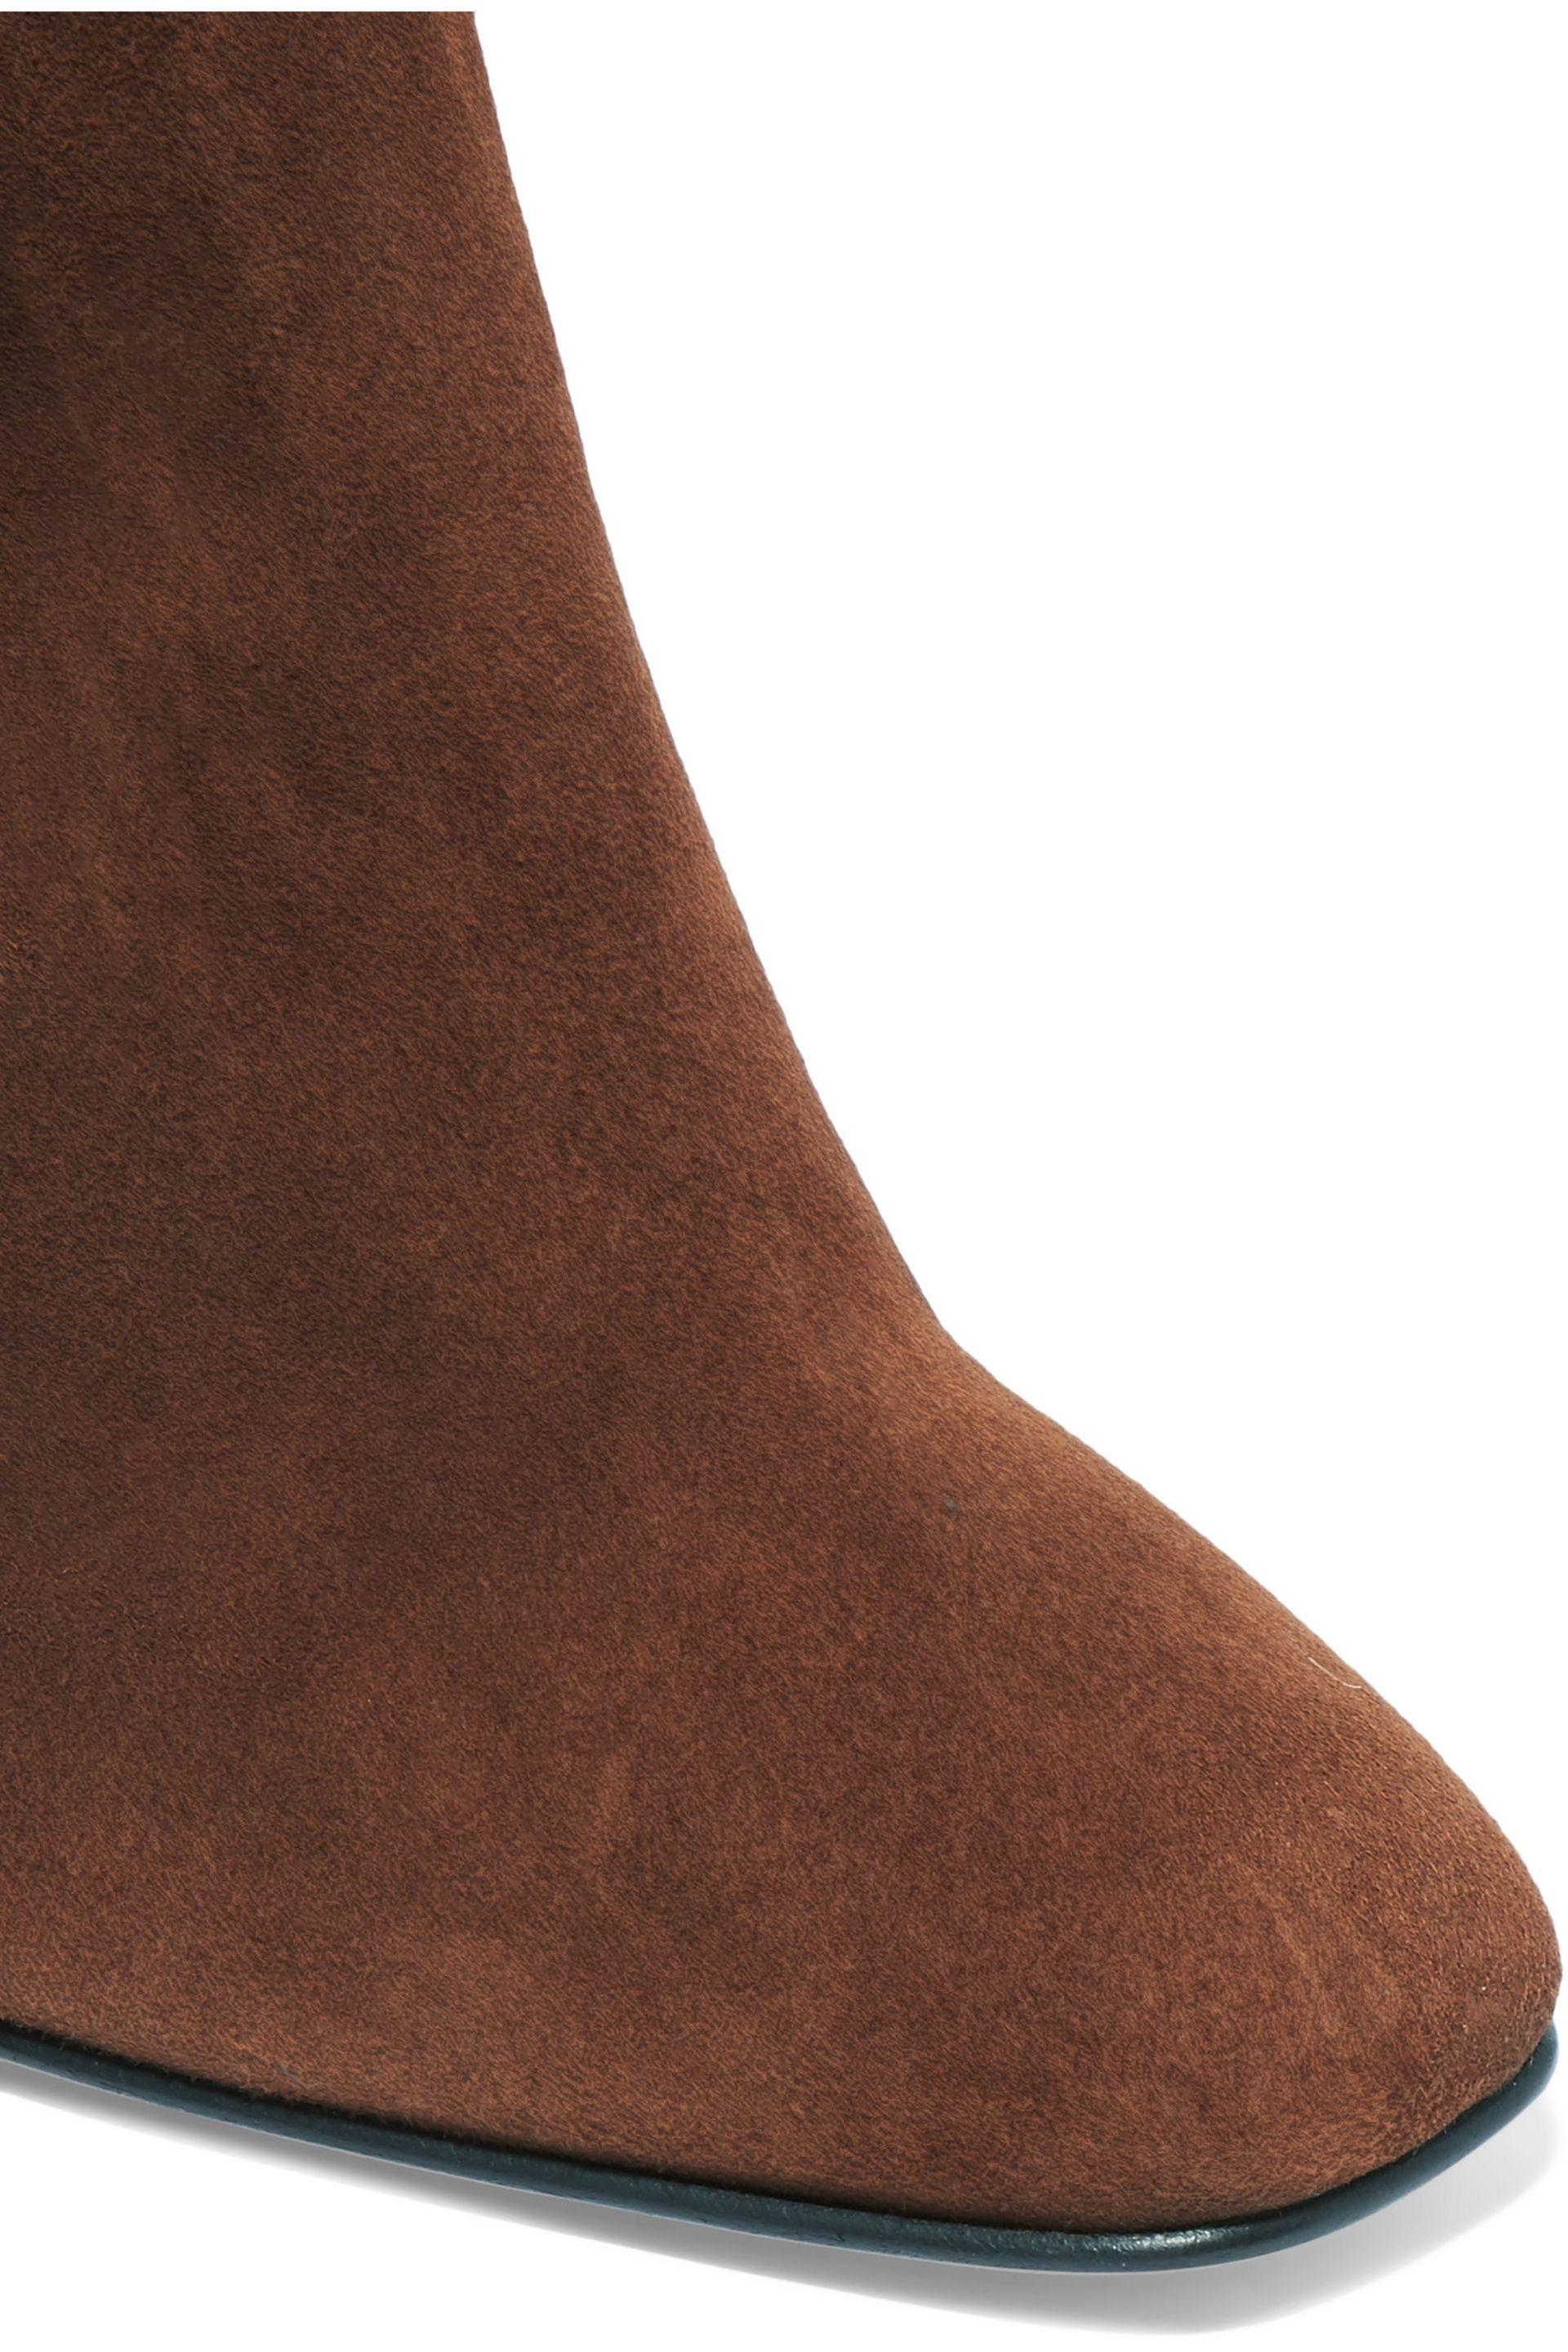 Giuseppe Zanotti Suede Thigh Boots in Brown